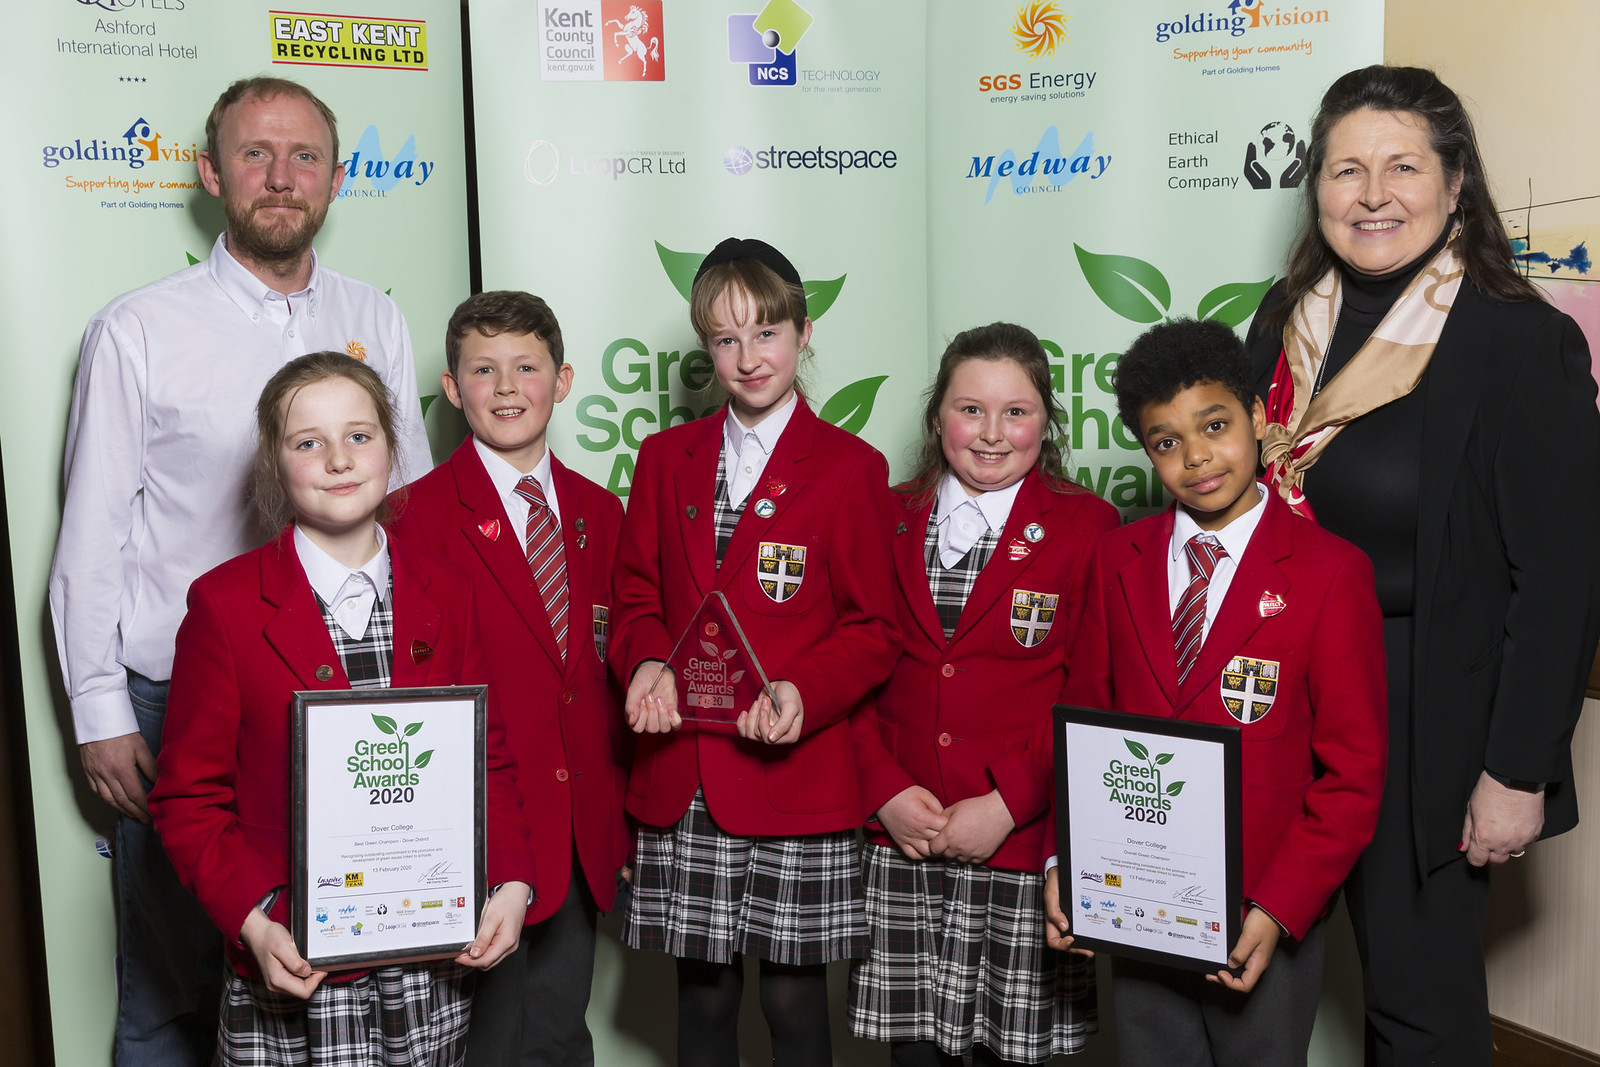 Green School Awards 2020